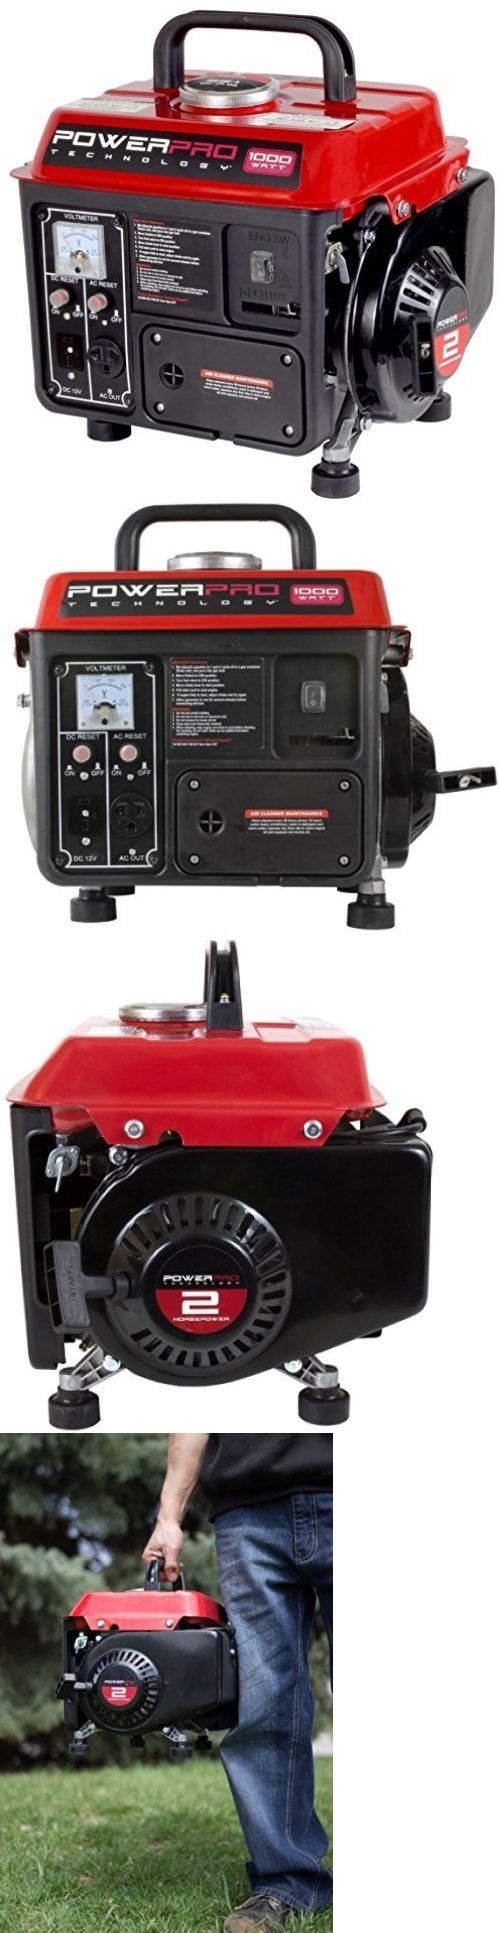 Generators and Heaters 16039: Gasoline Powered Portable Generator 1000-Watt Gas Backup Tailgating Power Supply BUY IT NOW ONLY: $192.95